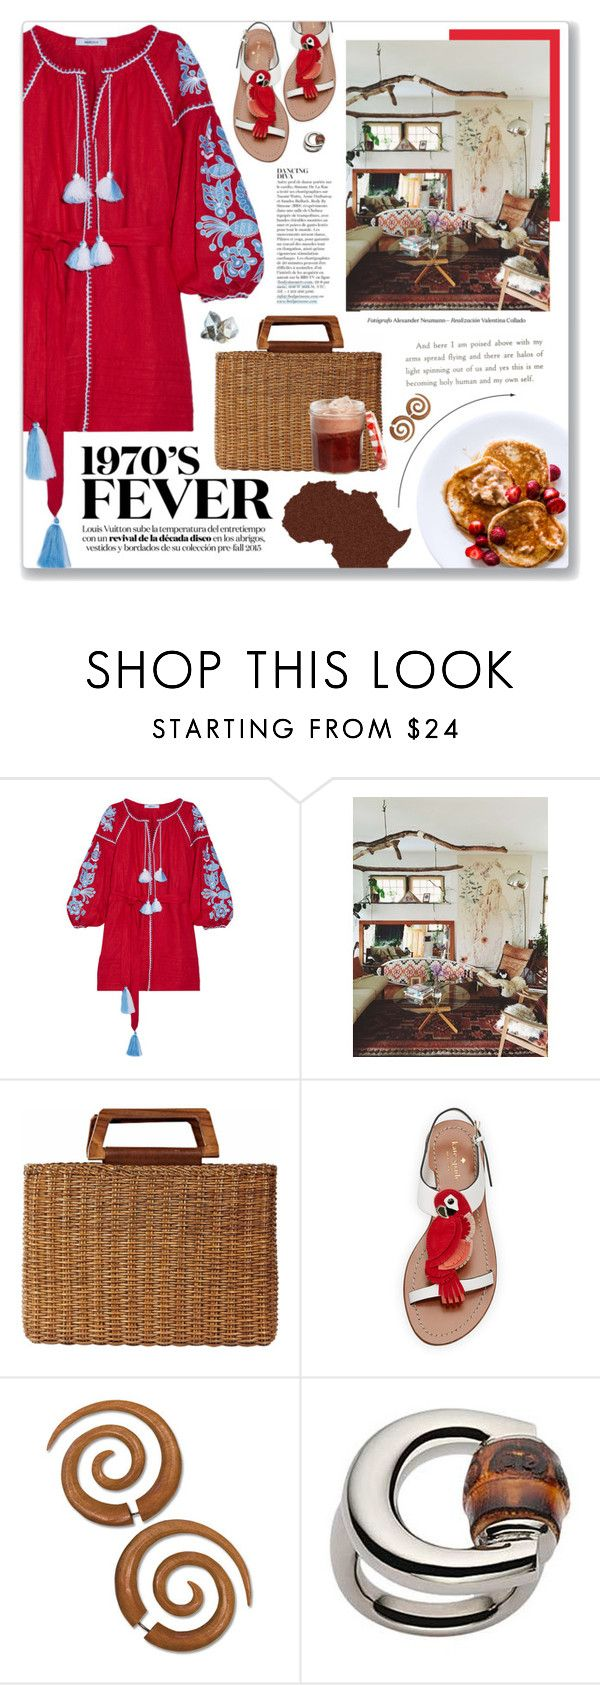 """""""Brandy (You're A Fine Girl), Looking Glass"""" by blendasantos ❤ liked on Polyvore featuring March11, Salvatore Ferragamo, Kate Spade, Anja, Gucci and summerbrights"""